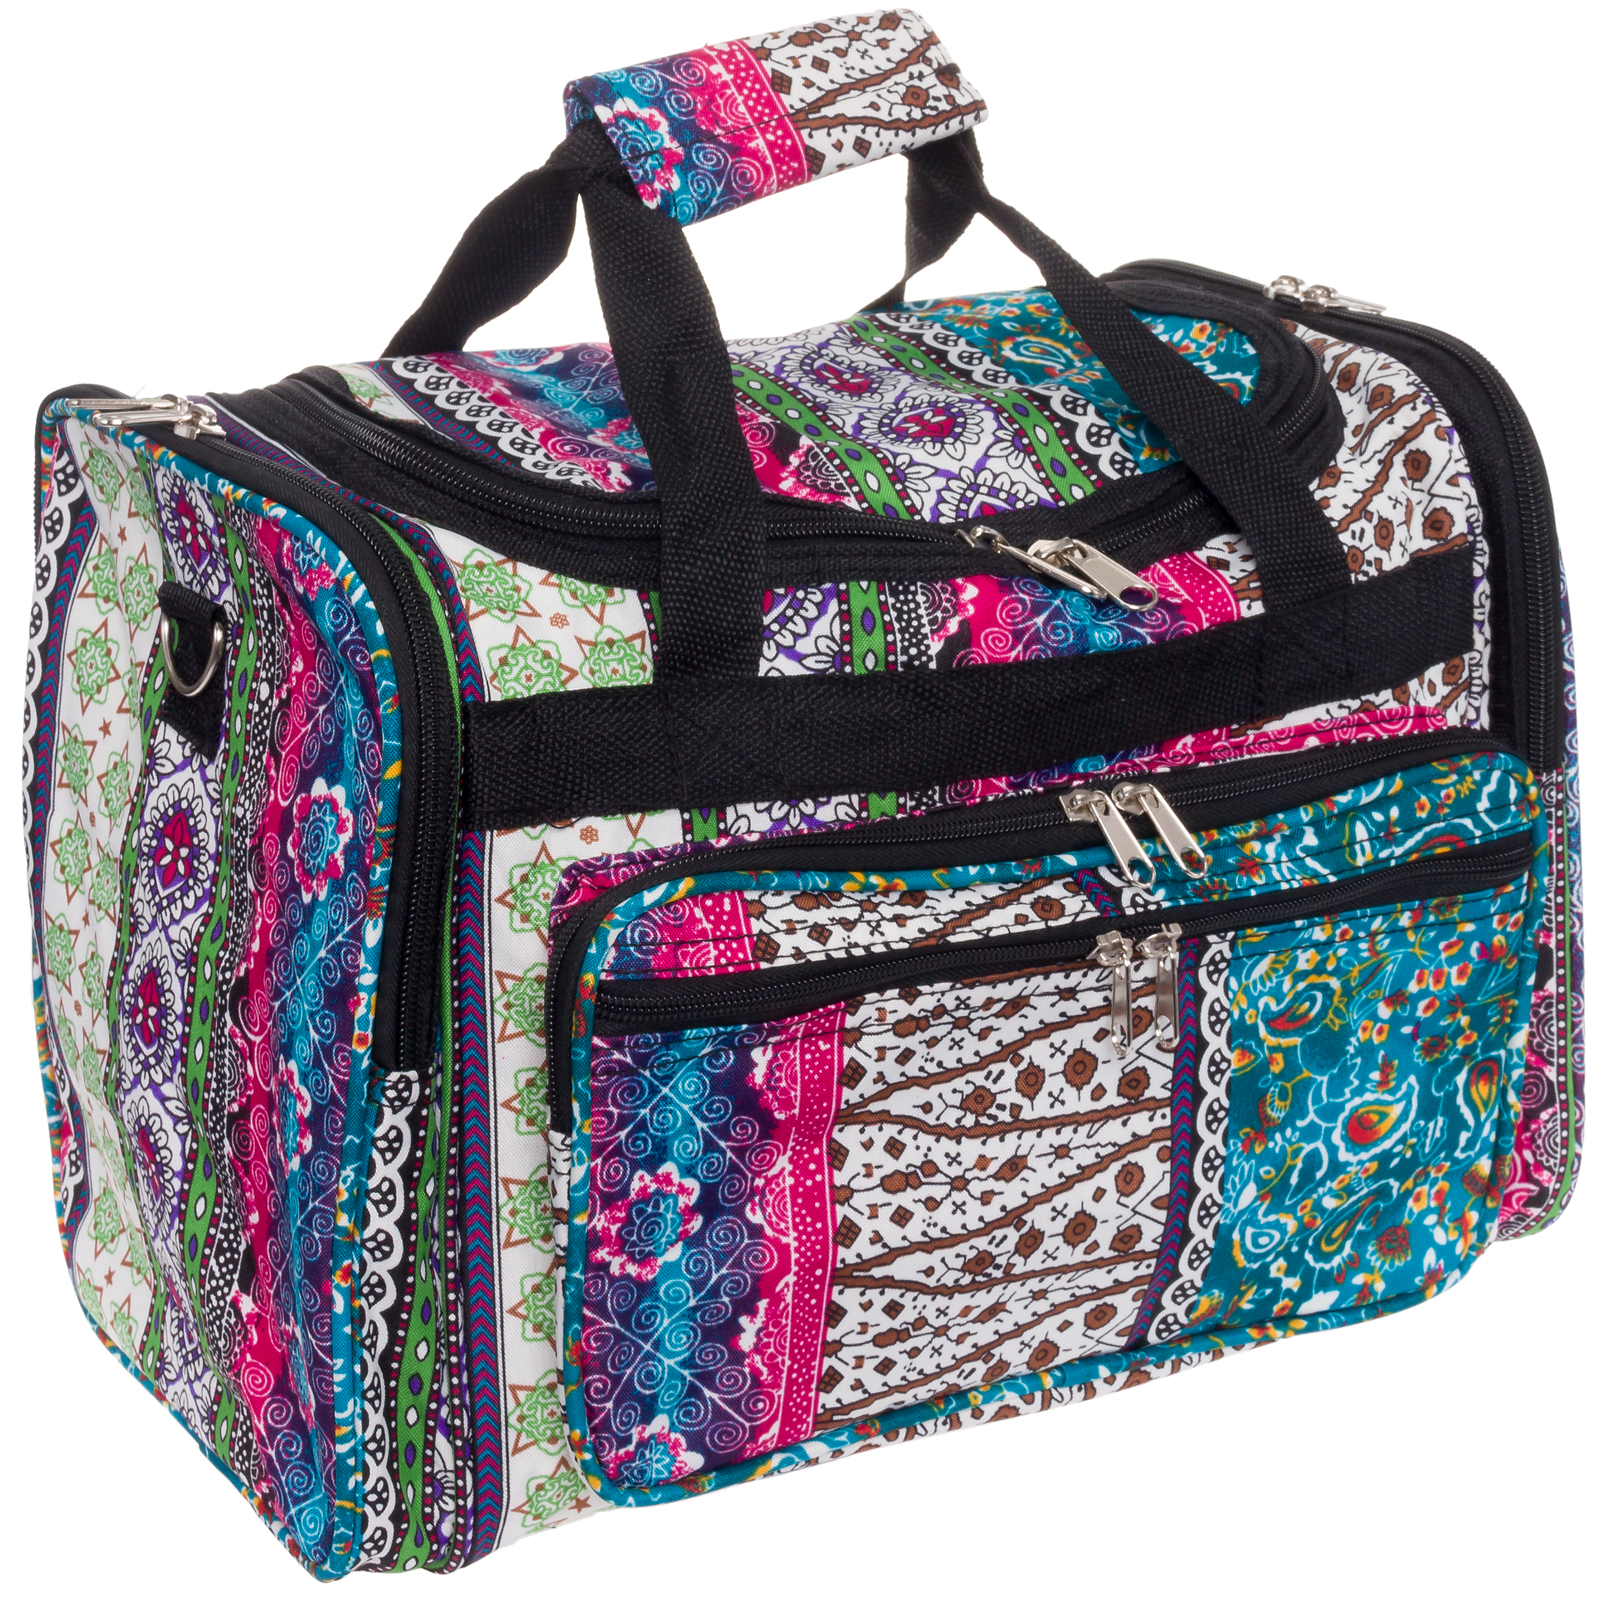 "SILVERHOOKS NEW Bohemian 16"" Inch Duffel Carry-On Travel Gym Bag w/ Black Trim"